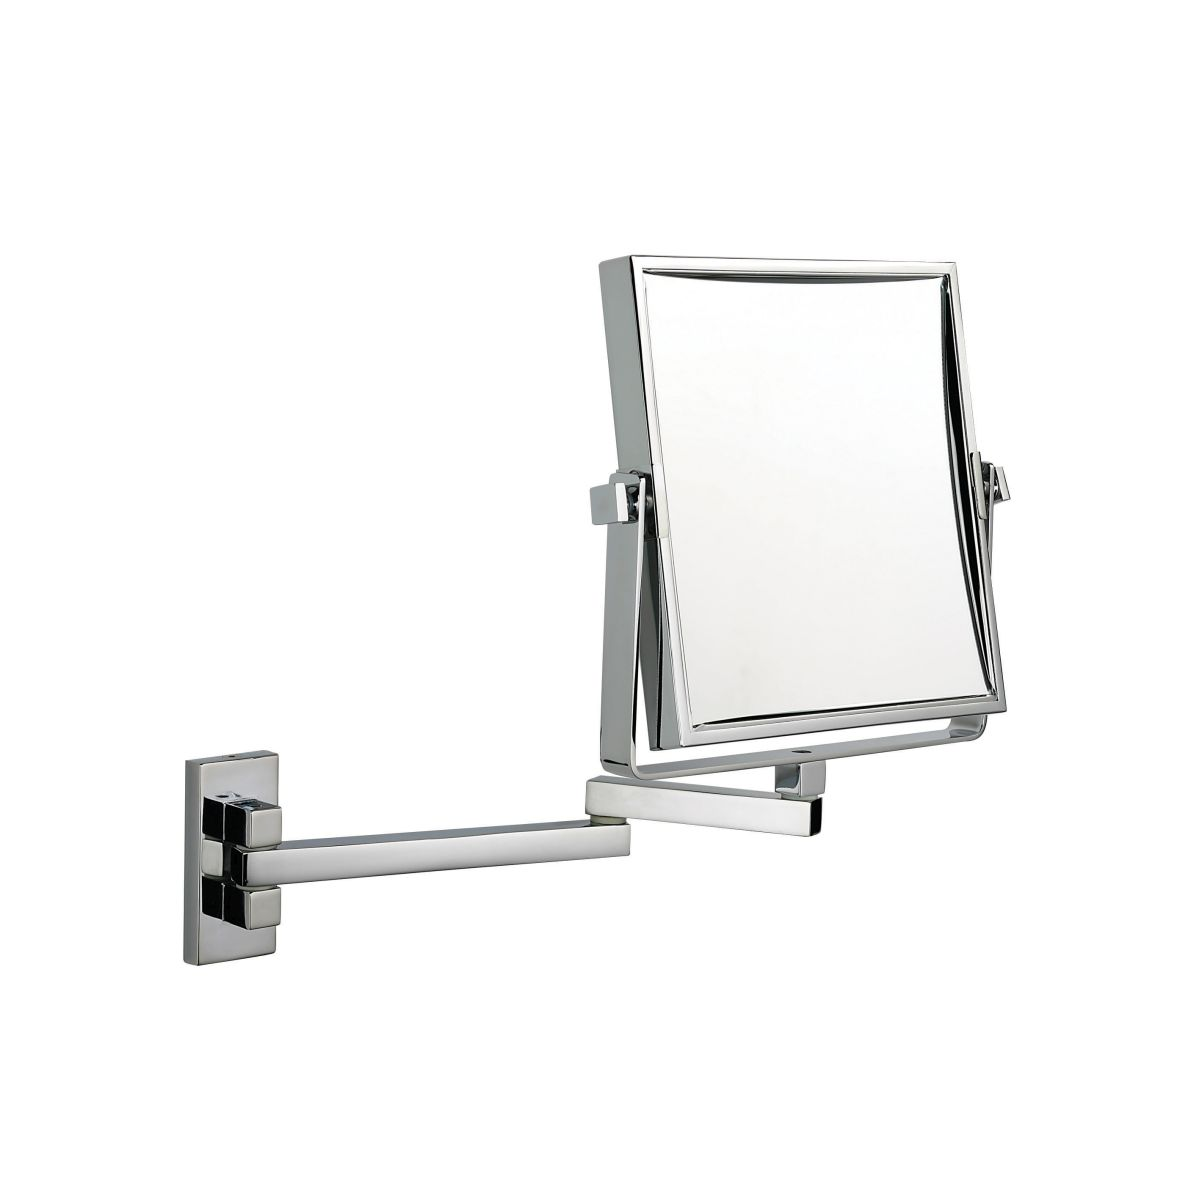 396 20 chr 3 - Chrome Wall Mirror 3x Magnification 'Fifth Avenue' - 396/20CHR